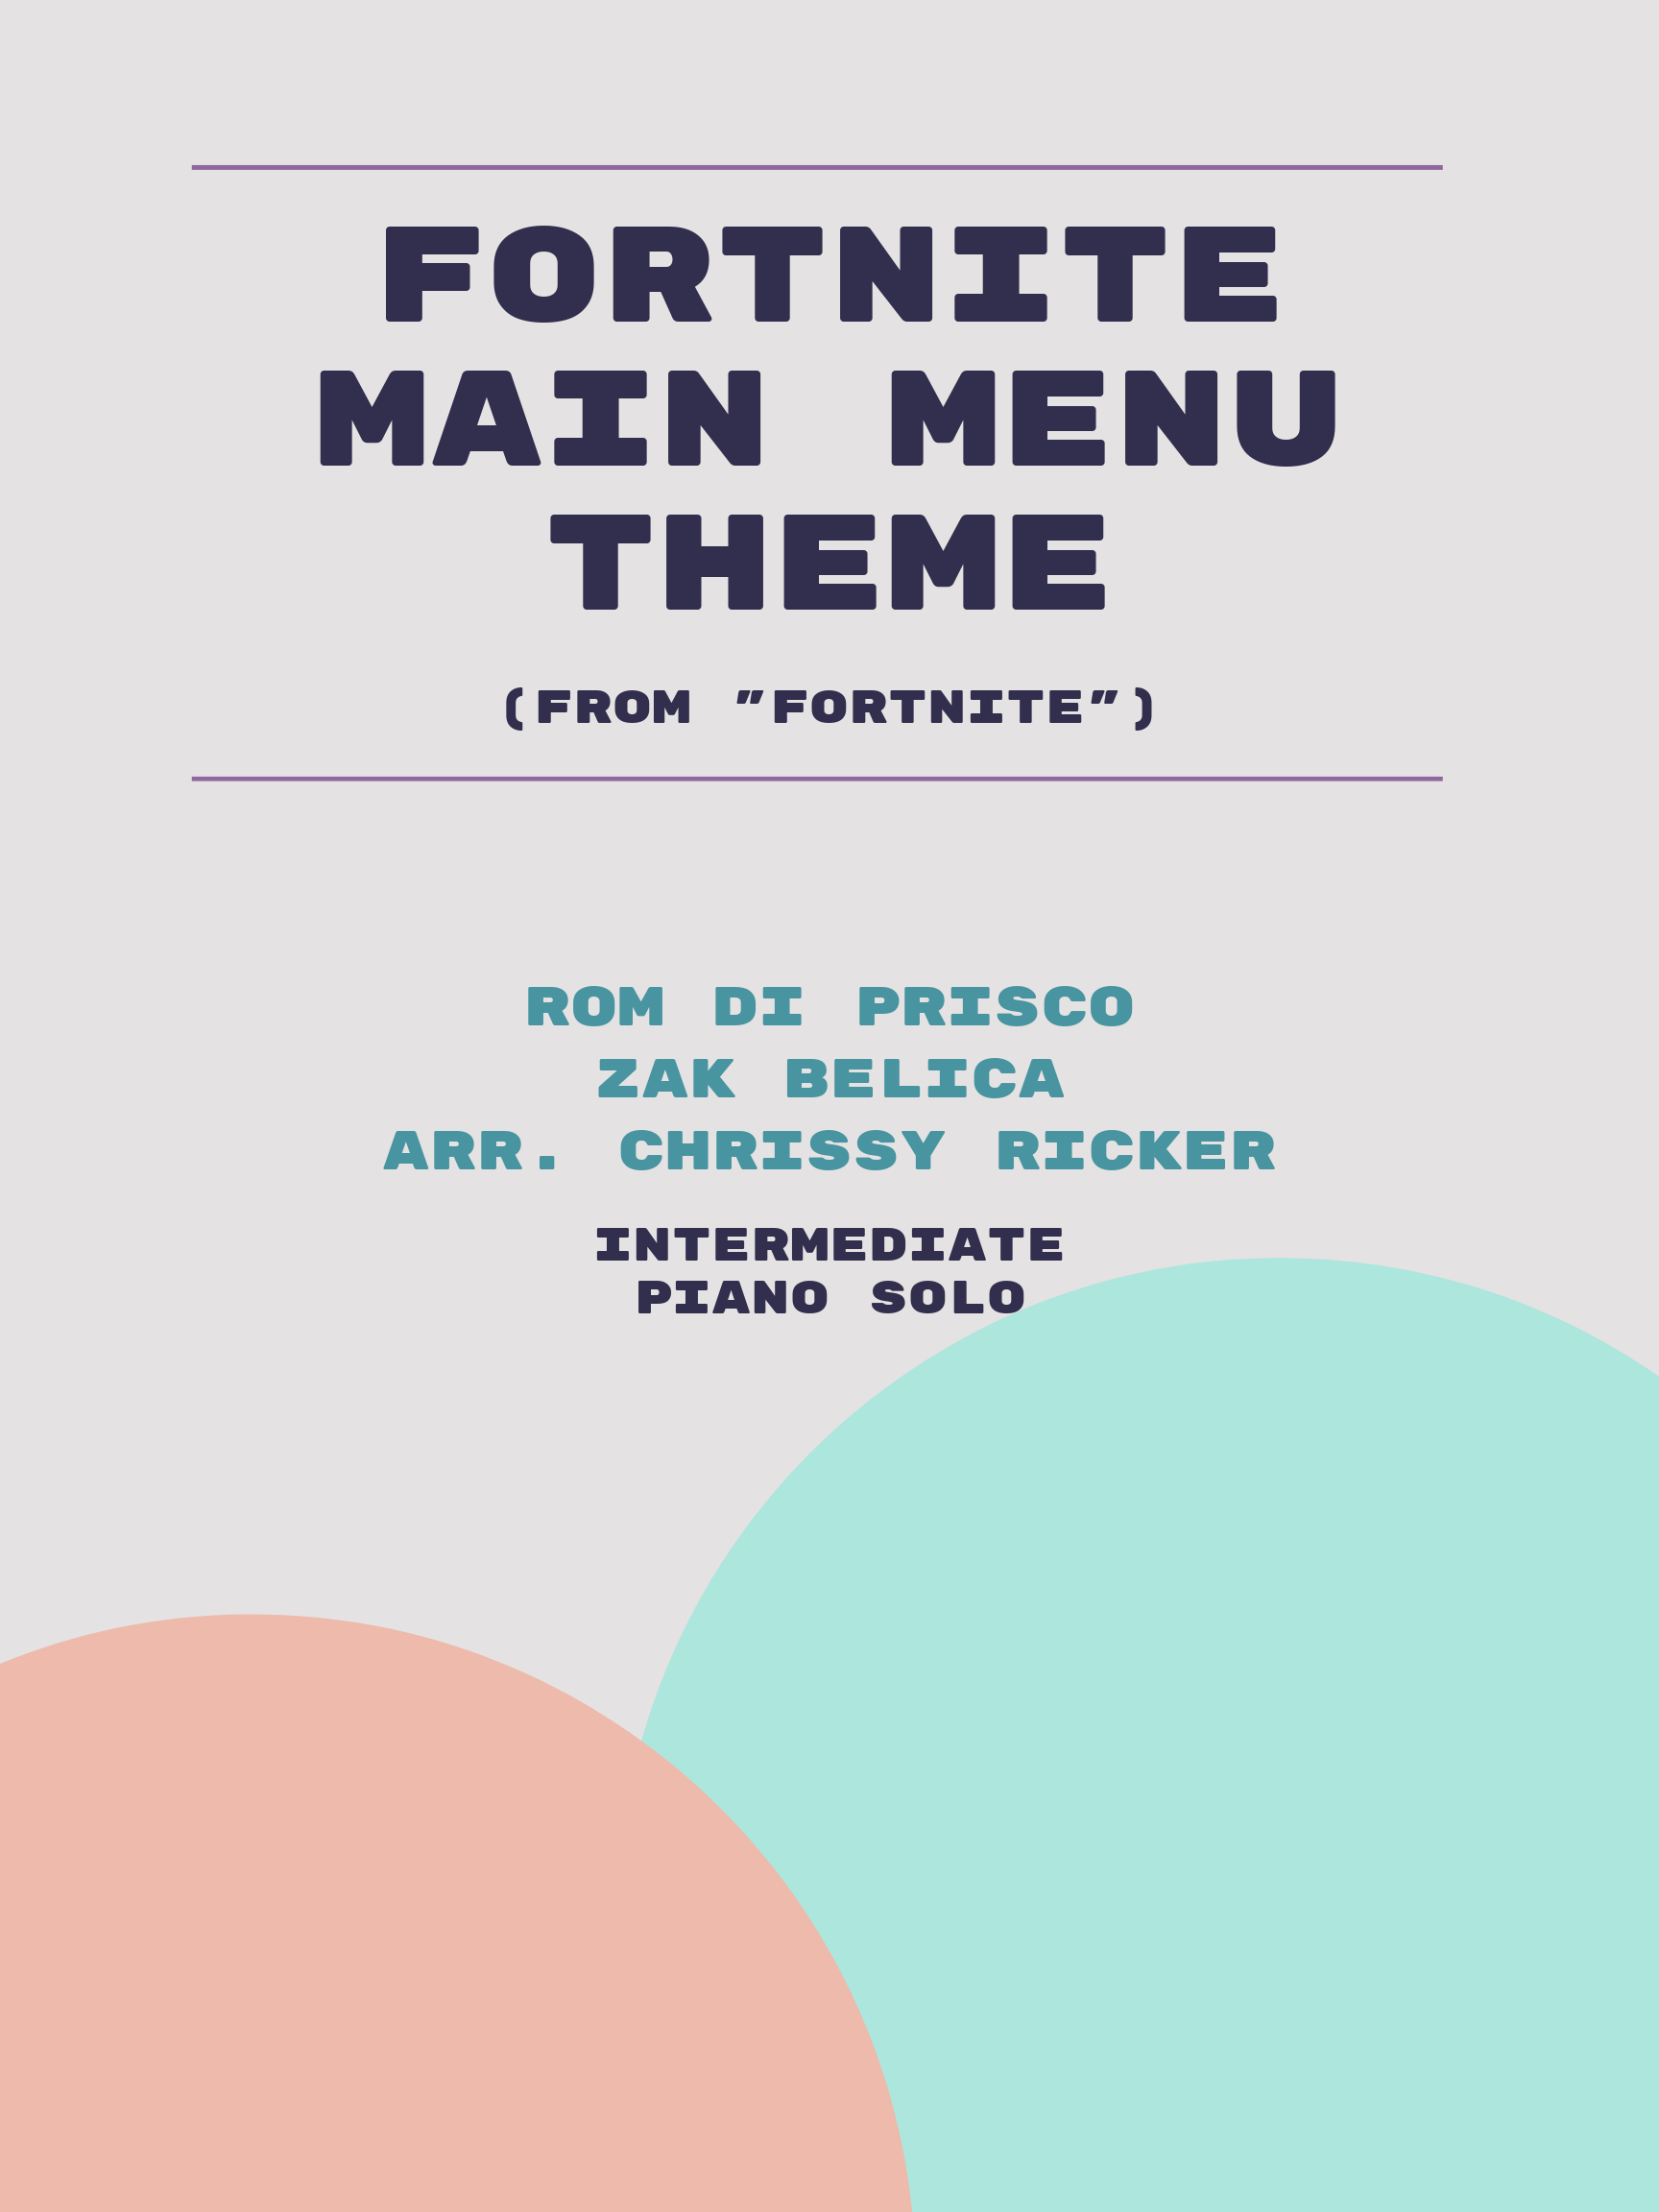 Fortnite Main Menu Theme by Rom Di Prisco, Zak Belica